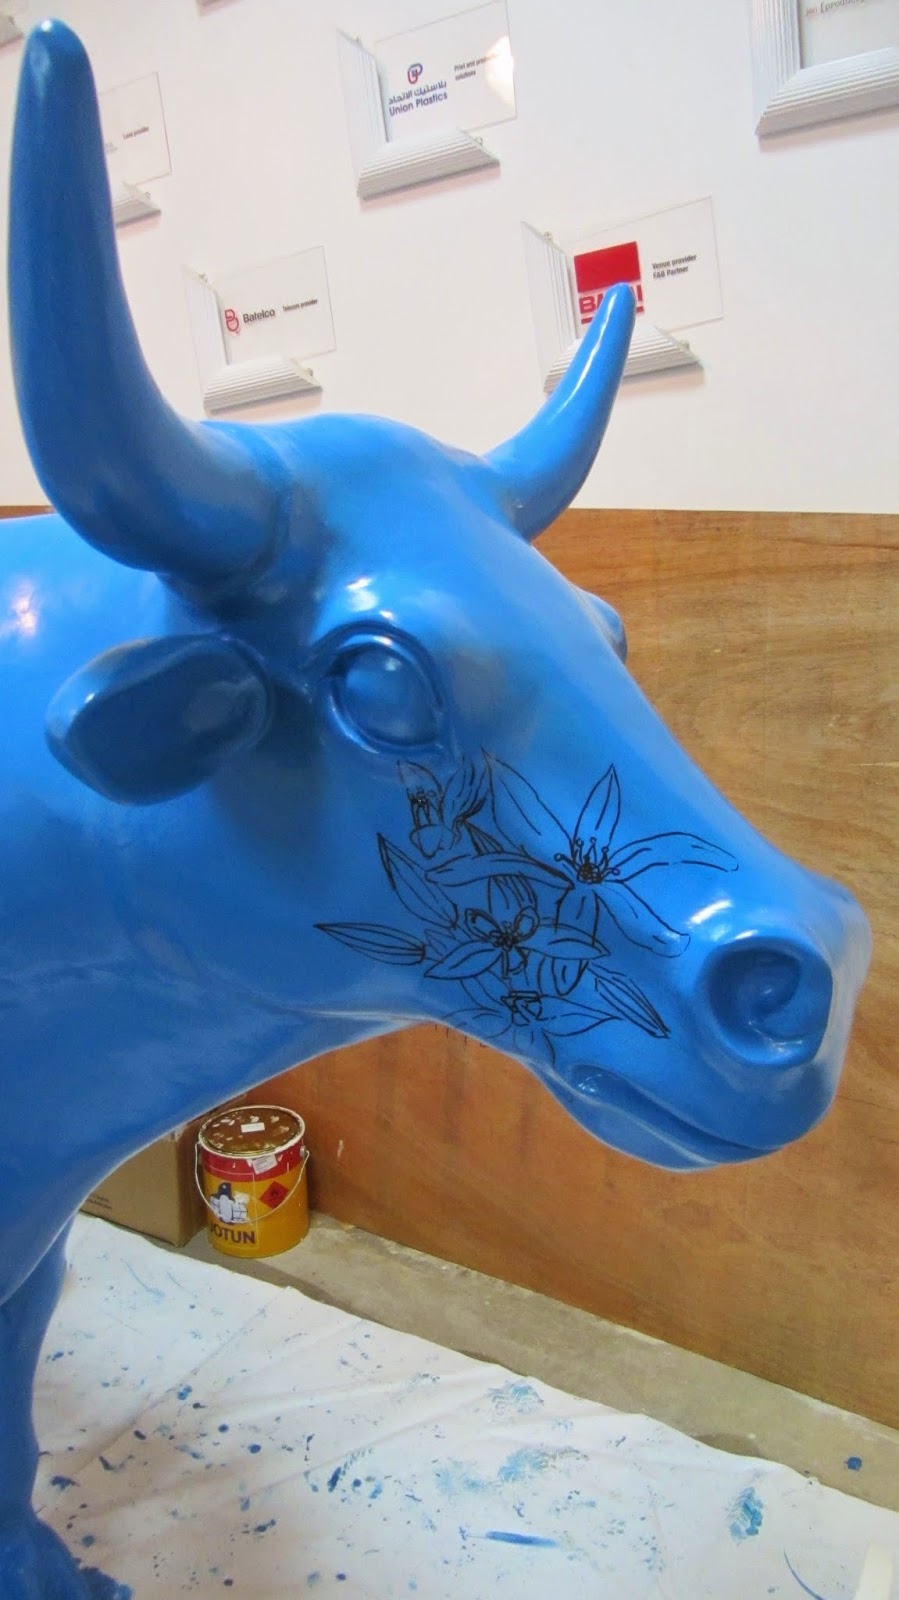 Malja A Red Bull space Amwaj Islands Bahrain blue cow face blog